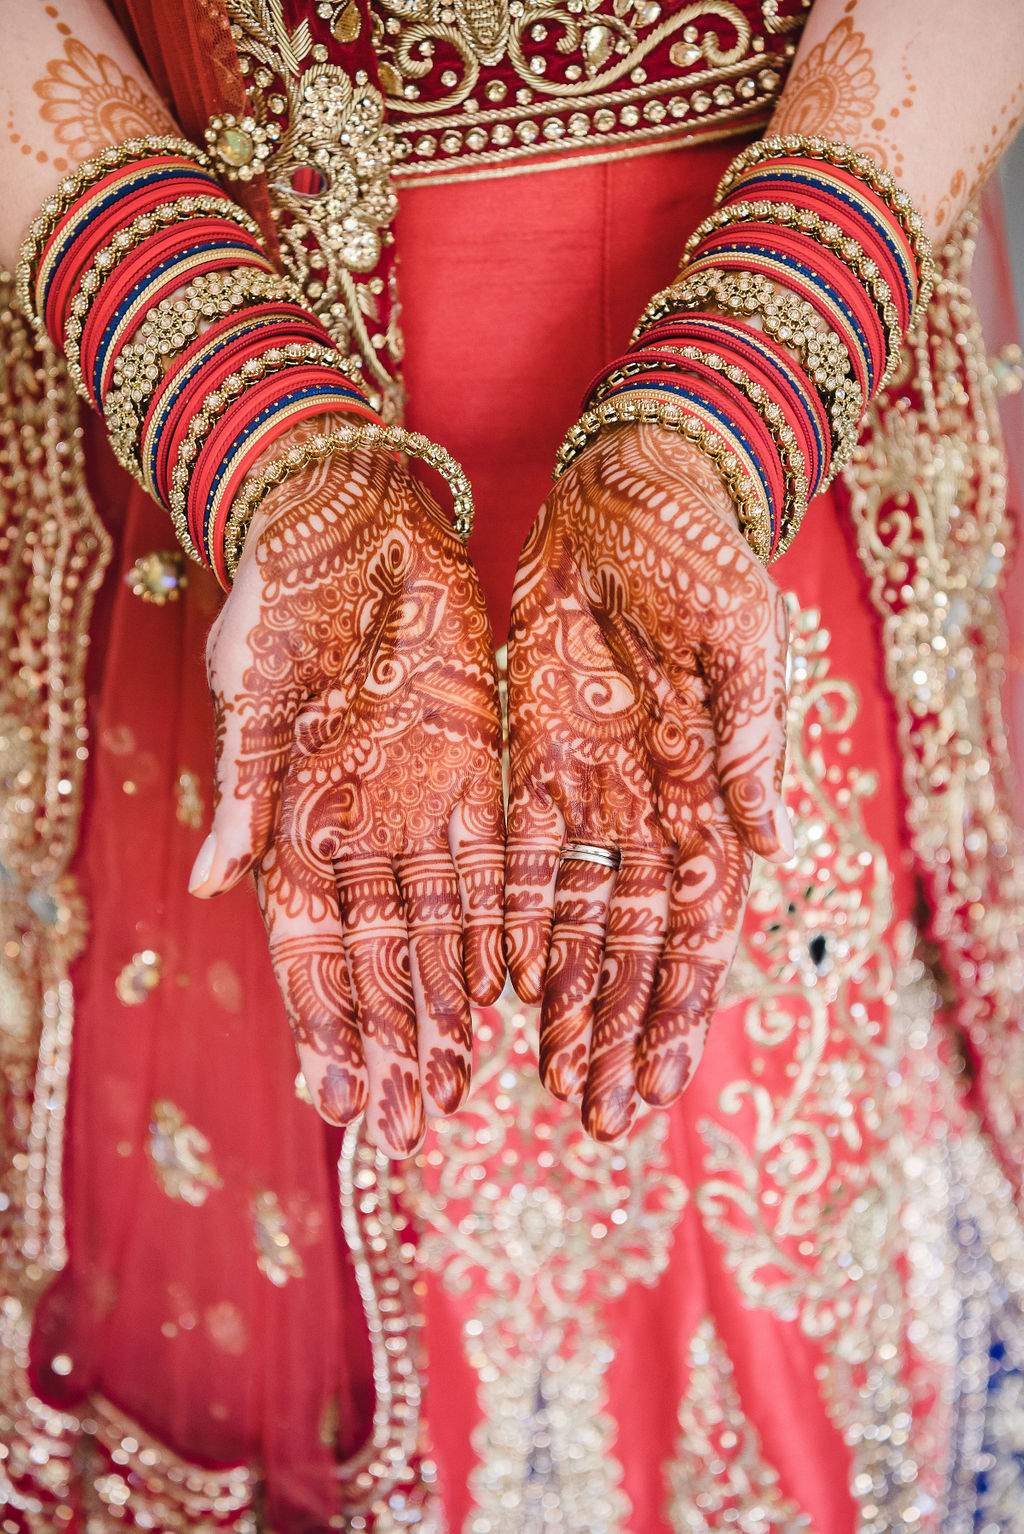 Indian wedding, Indian wedding dress, red wedding dress, bride, hennah